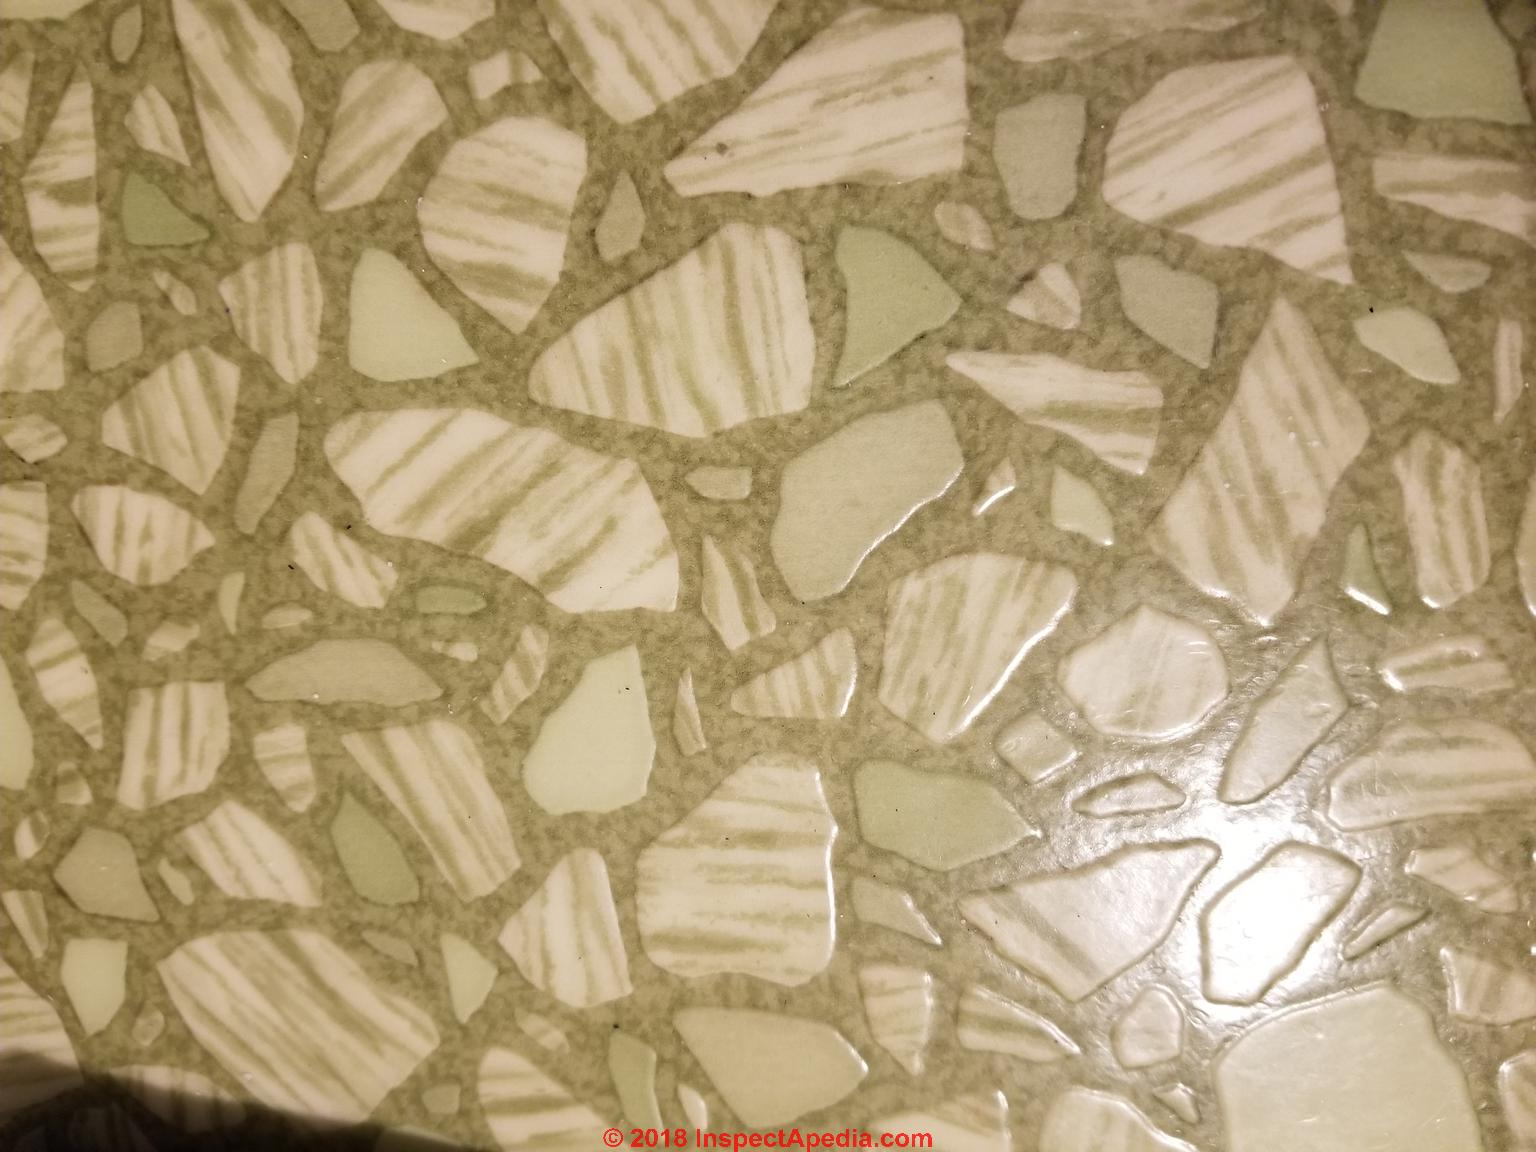 Asbestos floor tile id faqs green stone pattern sheet flooring in a 1940s home c inspectapedia luci dailygadgetfo Images